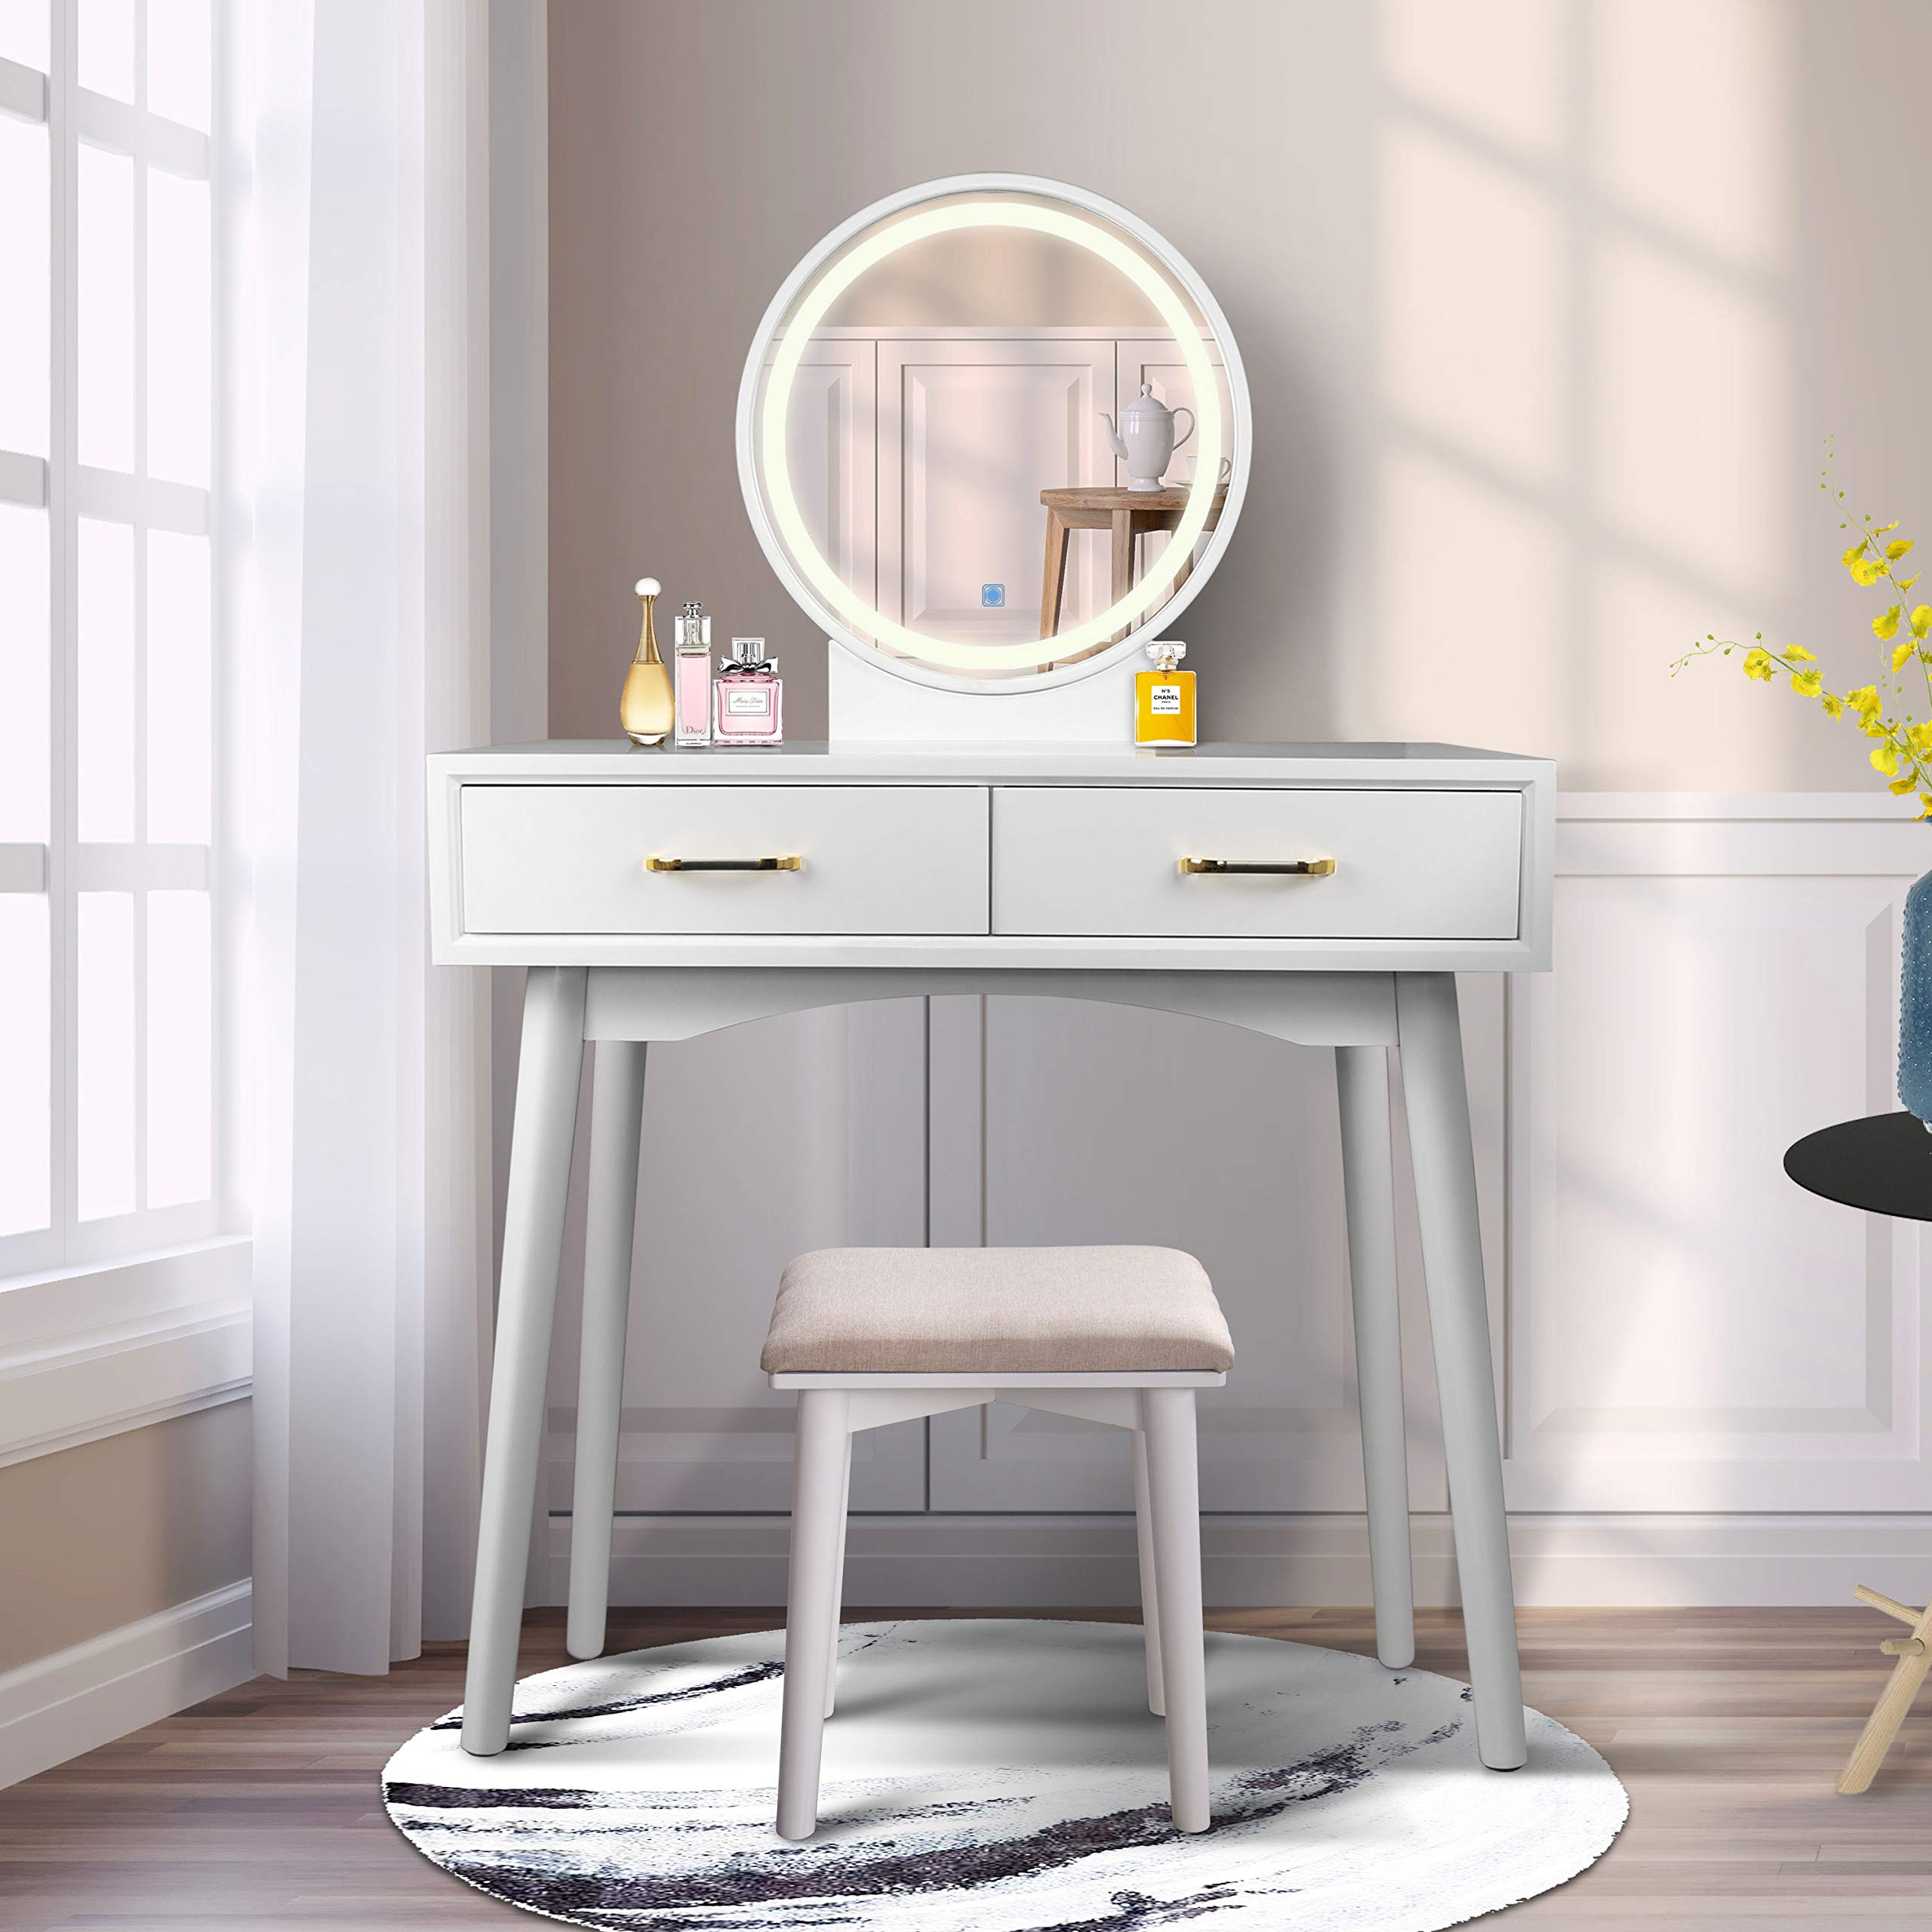 Vanity Table Set with Lighted LED Touch Screen Dimming Round Mirror,Makeup Dressing Table with 2 Sliding Drawers, 1 Cushioned Stool for Bedroom, Bathroom (White) by FUNKOCO